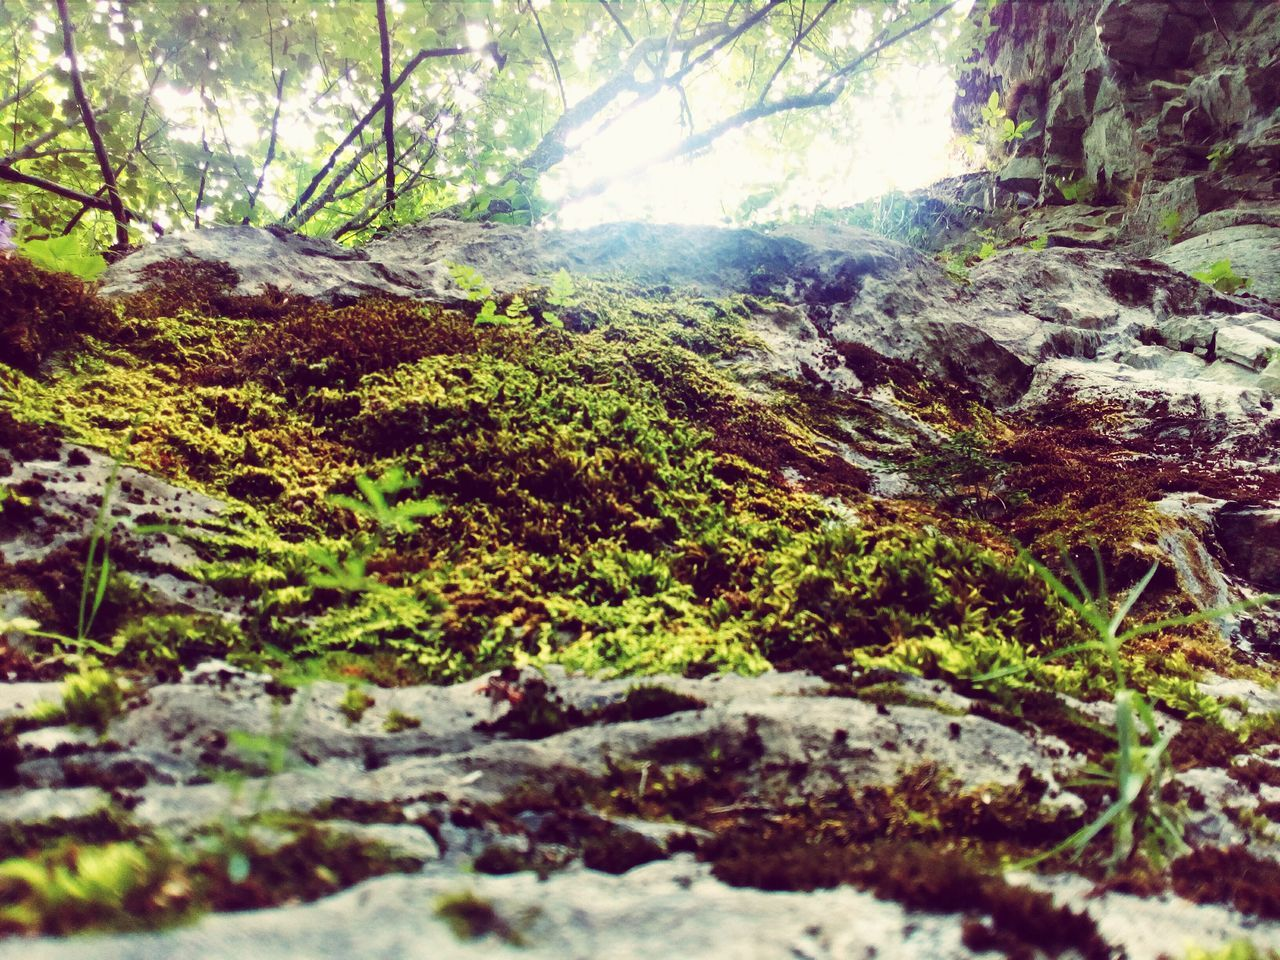 nature, beauty in nature, day, tranquility, forest, no people, mountain, outdoors, tranquil scene, wilderness, growth, landscape, moss, scenics, tree, scenery, close-up